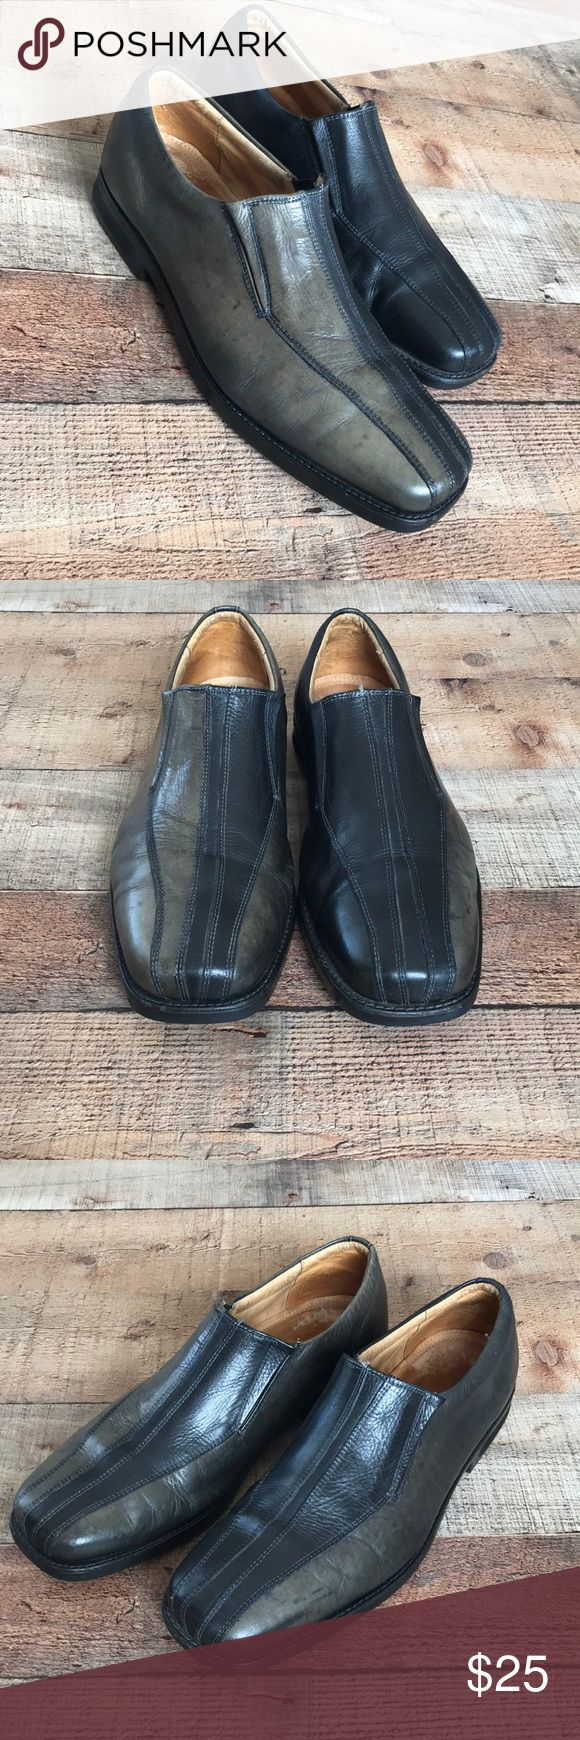 Sandro Moscoloni Vineyard Slip-Ons Used dress shoes Good condition Some wear down on inside leather as seen in photos Atomic Gel Flexibility Design & Technology Made in Brazil - stamped in leather Sandro Moscoloni Shoes Loafers & Slip-Ons